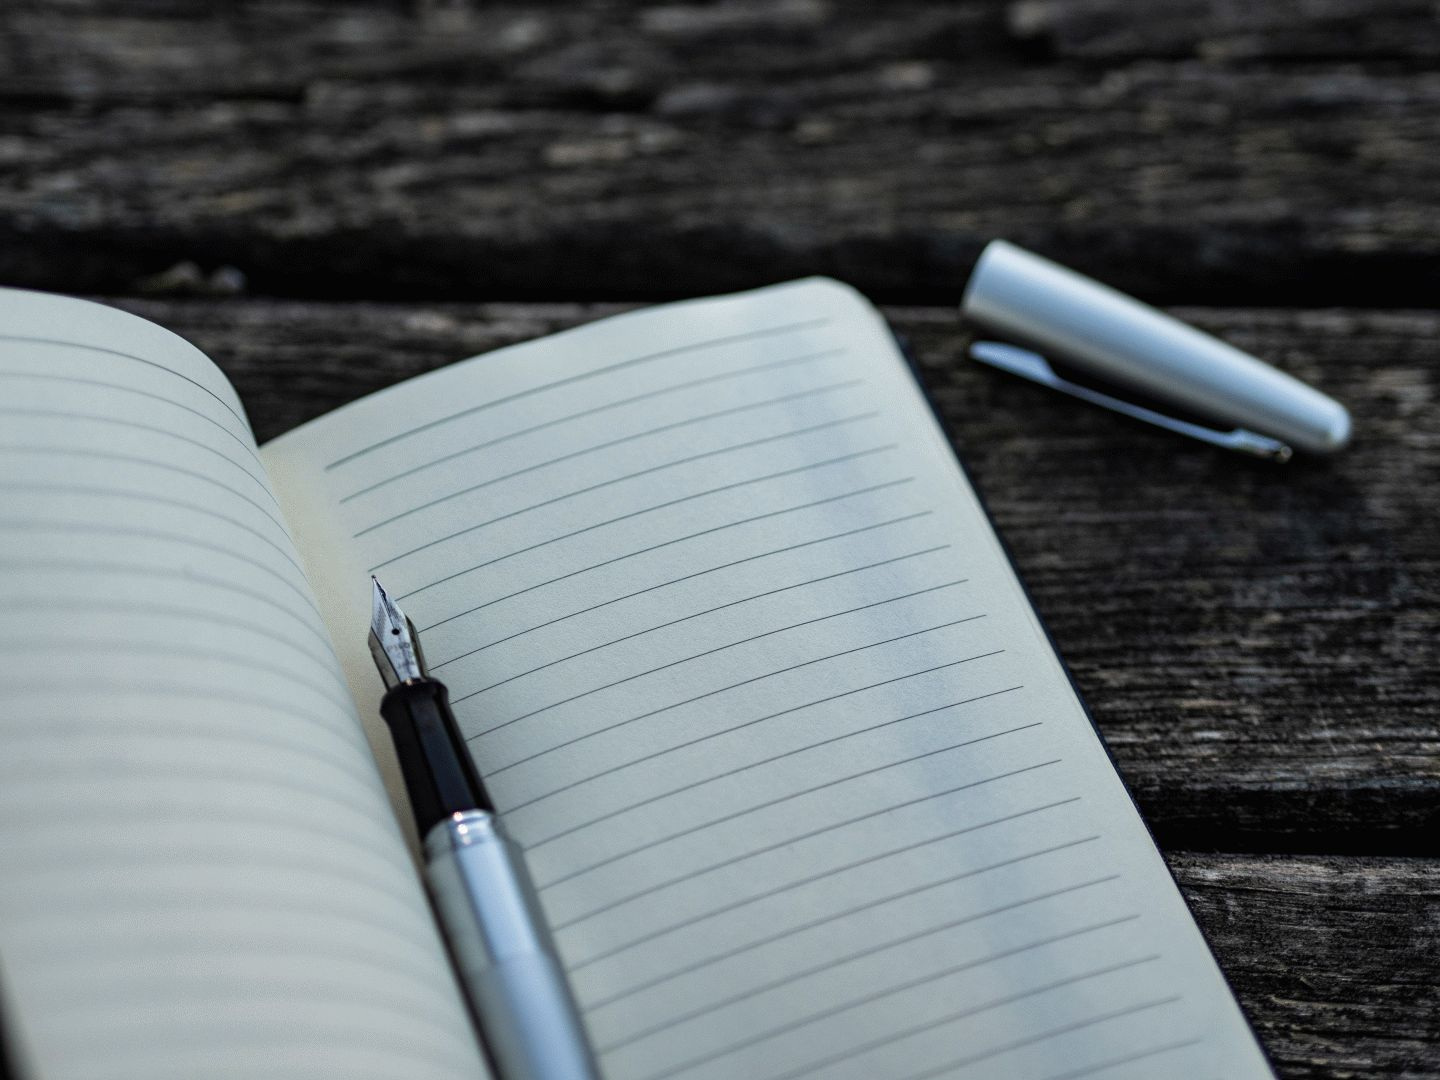 A blank notebook with fountain pen